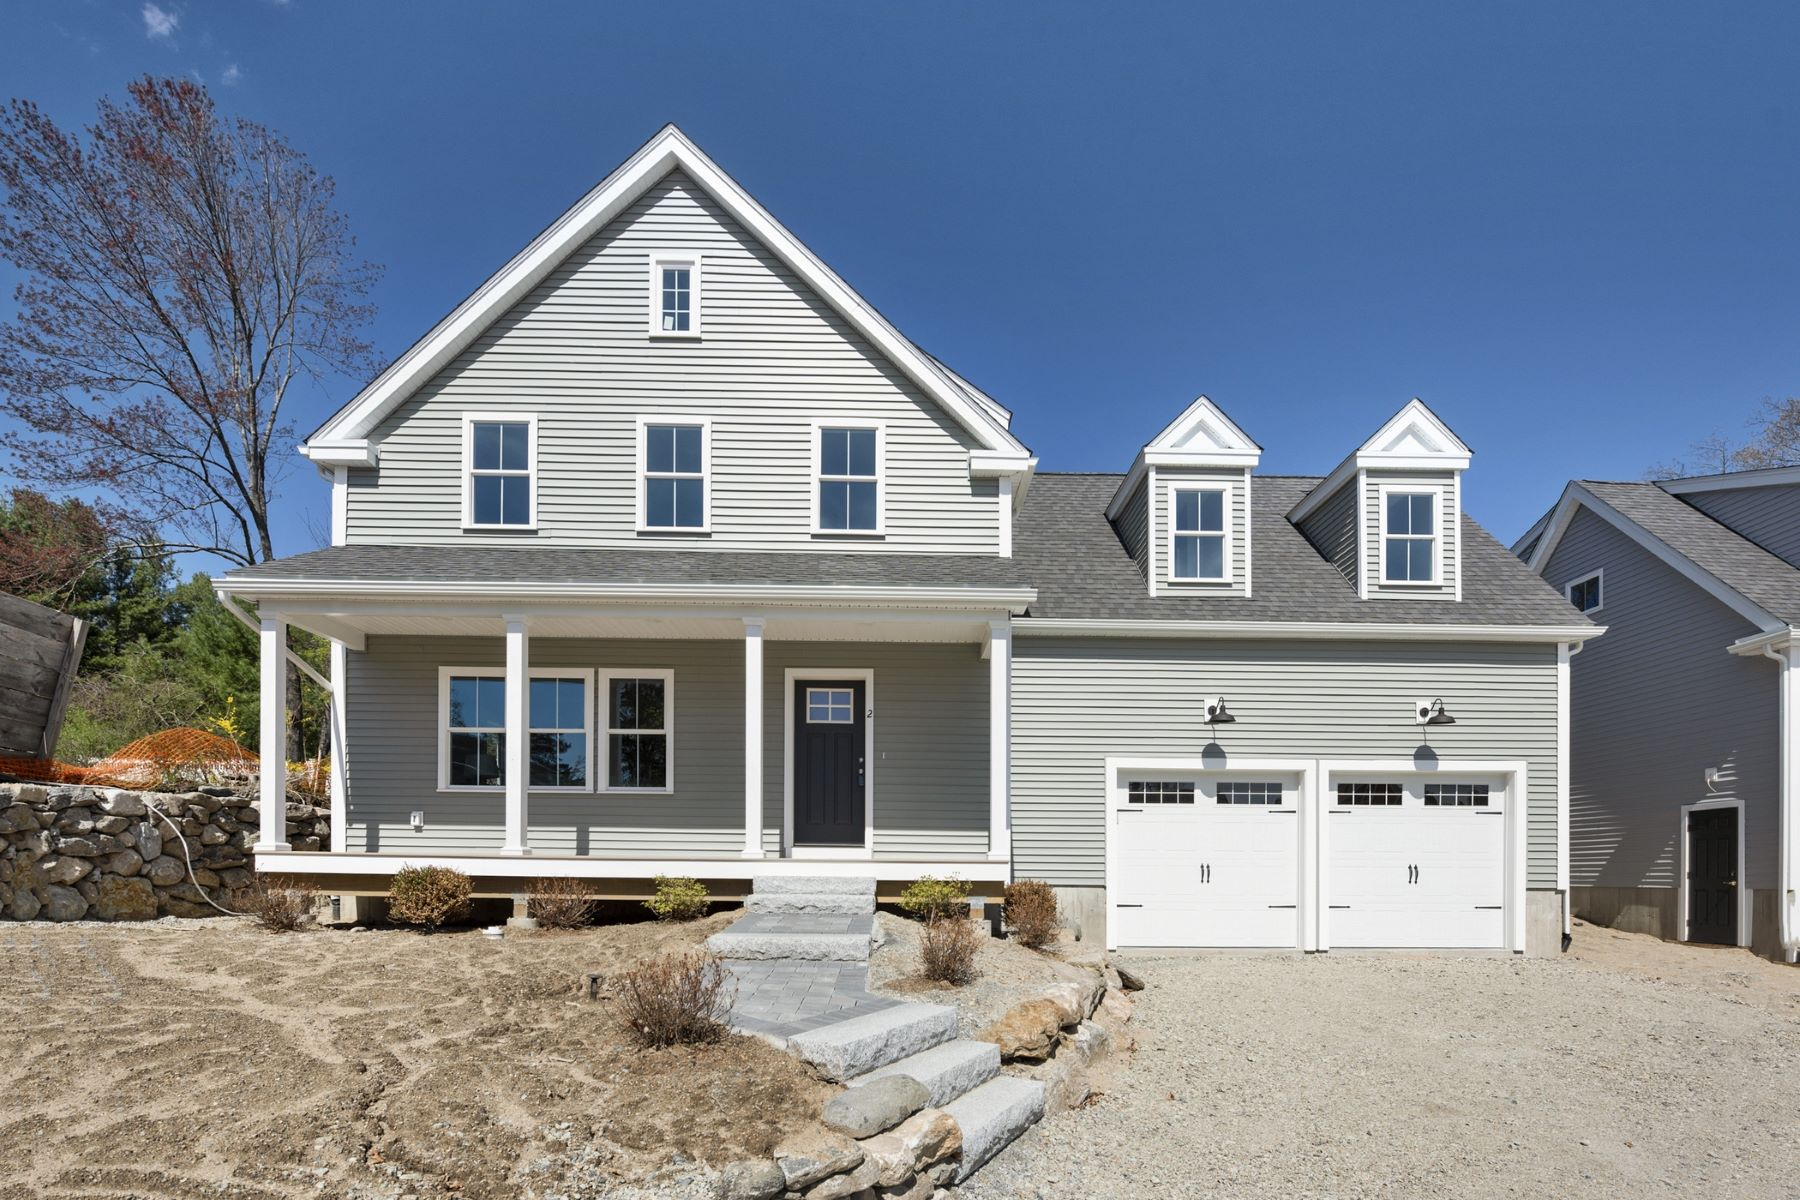 Single Family Homes for Sale at 8 Shiraz Lane Acton, Massachusetts 01720 United States